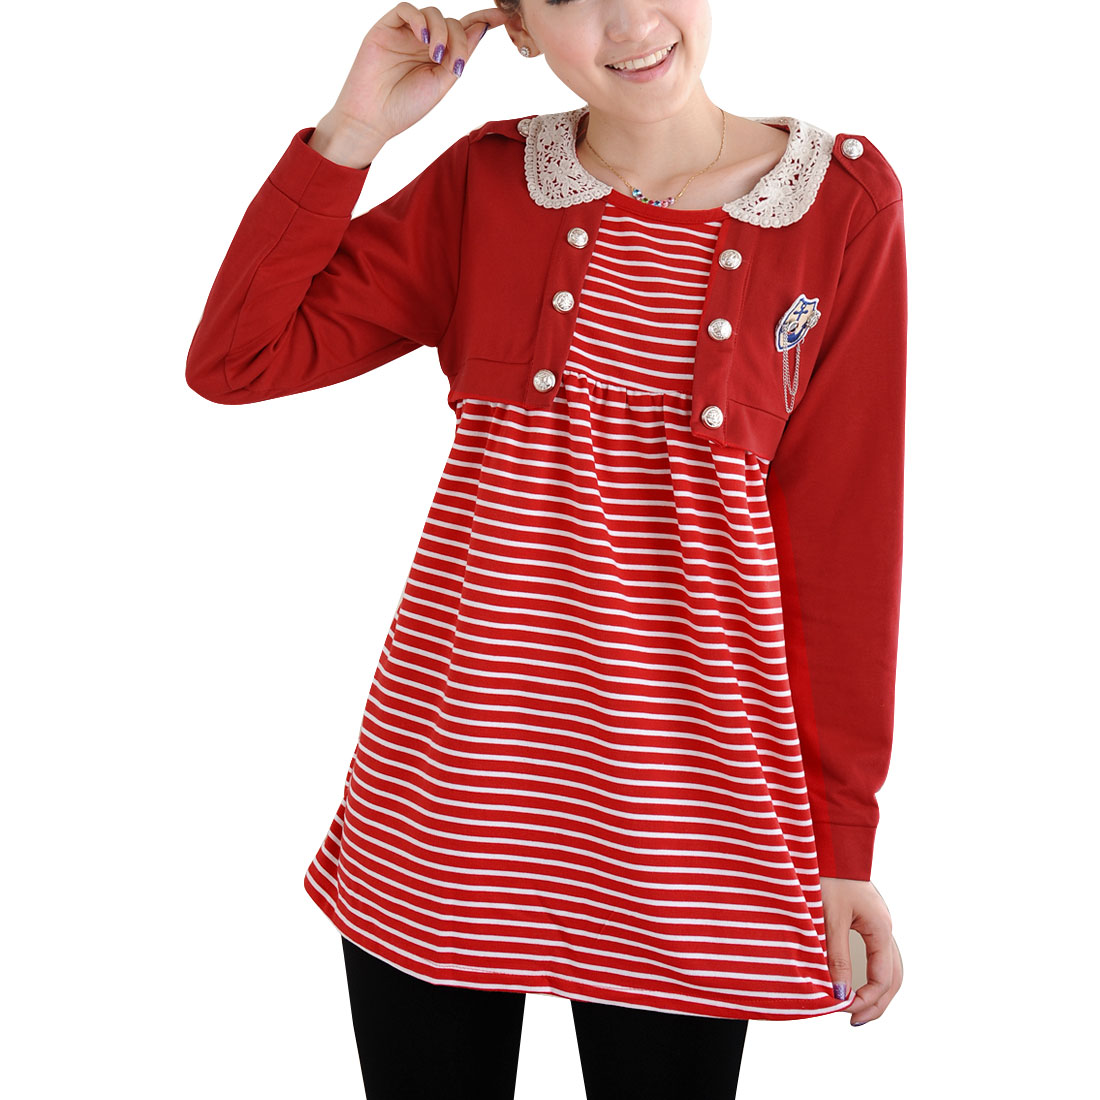 Pregnant Woman Red White Stripes Scoop Neck Pullover Blouse Top M